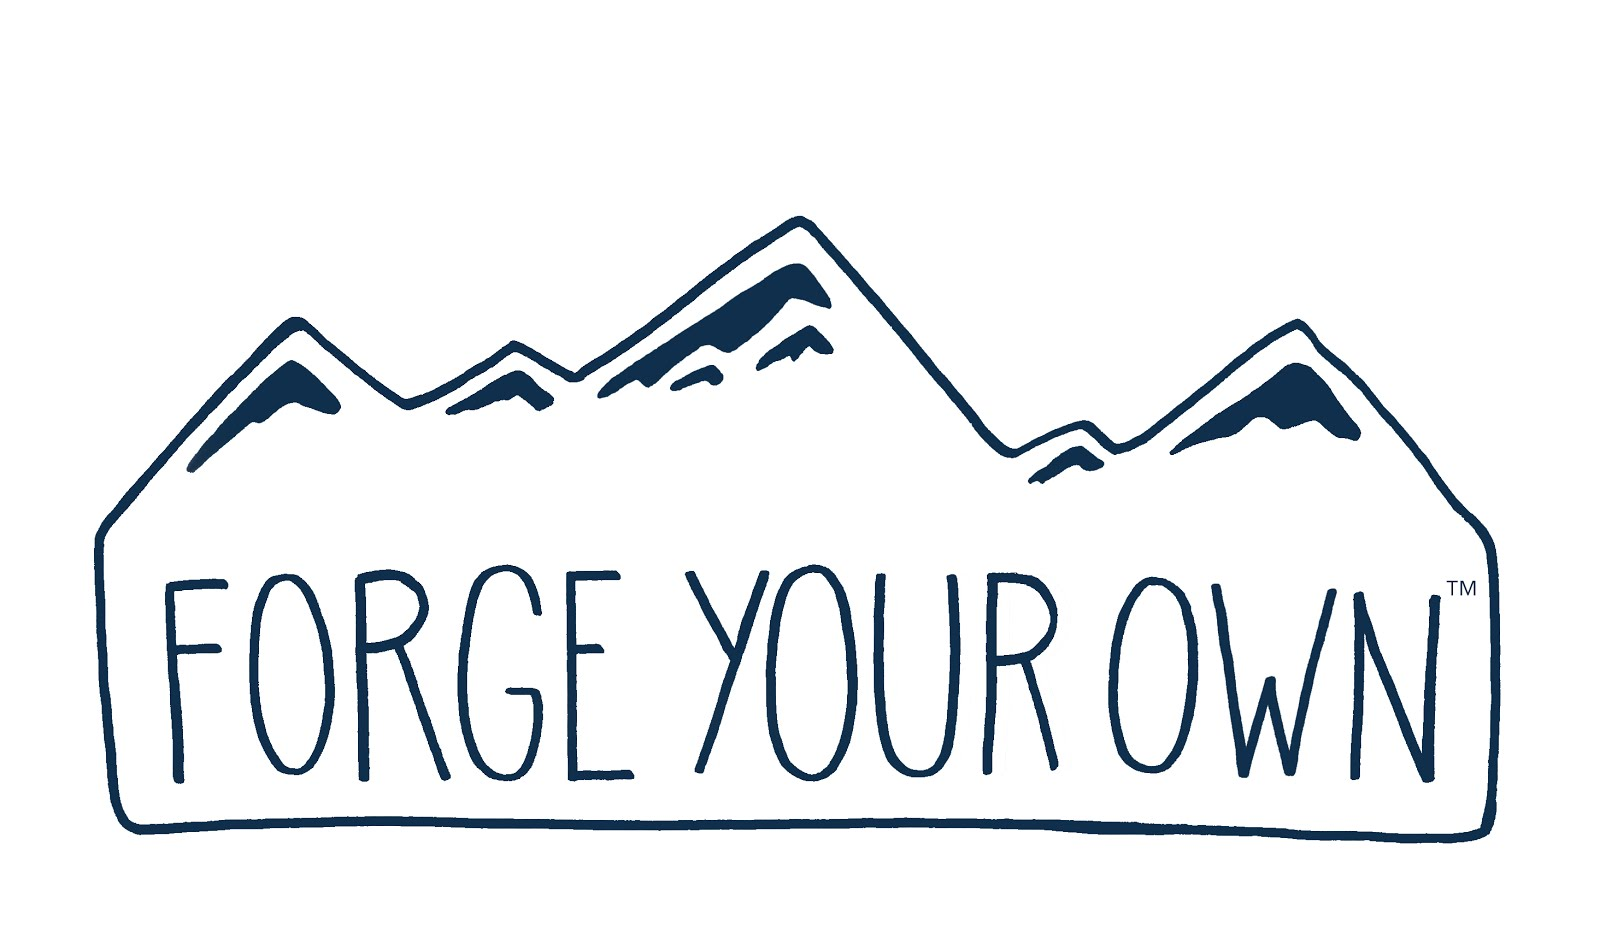 Forge Your Own